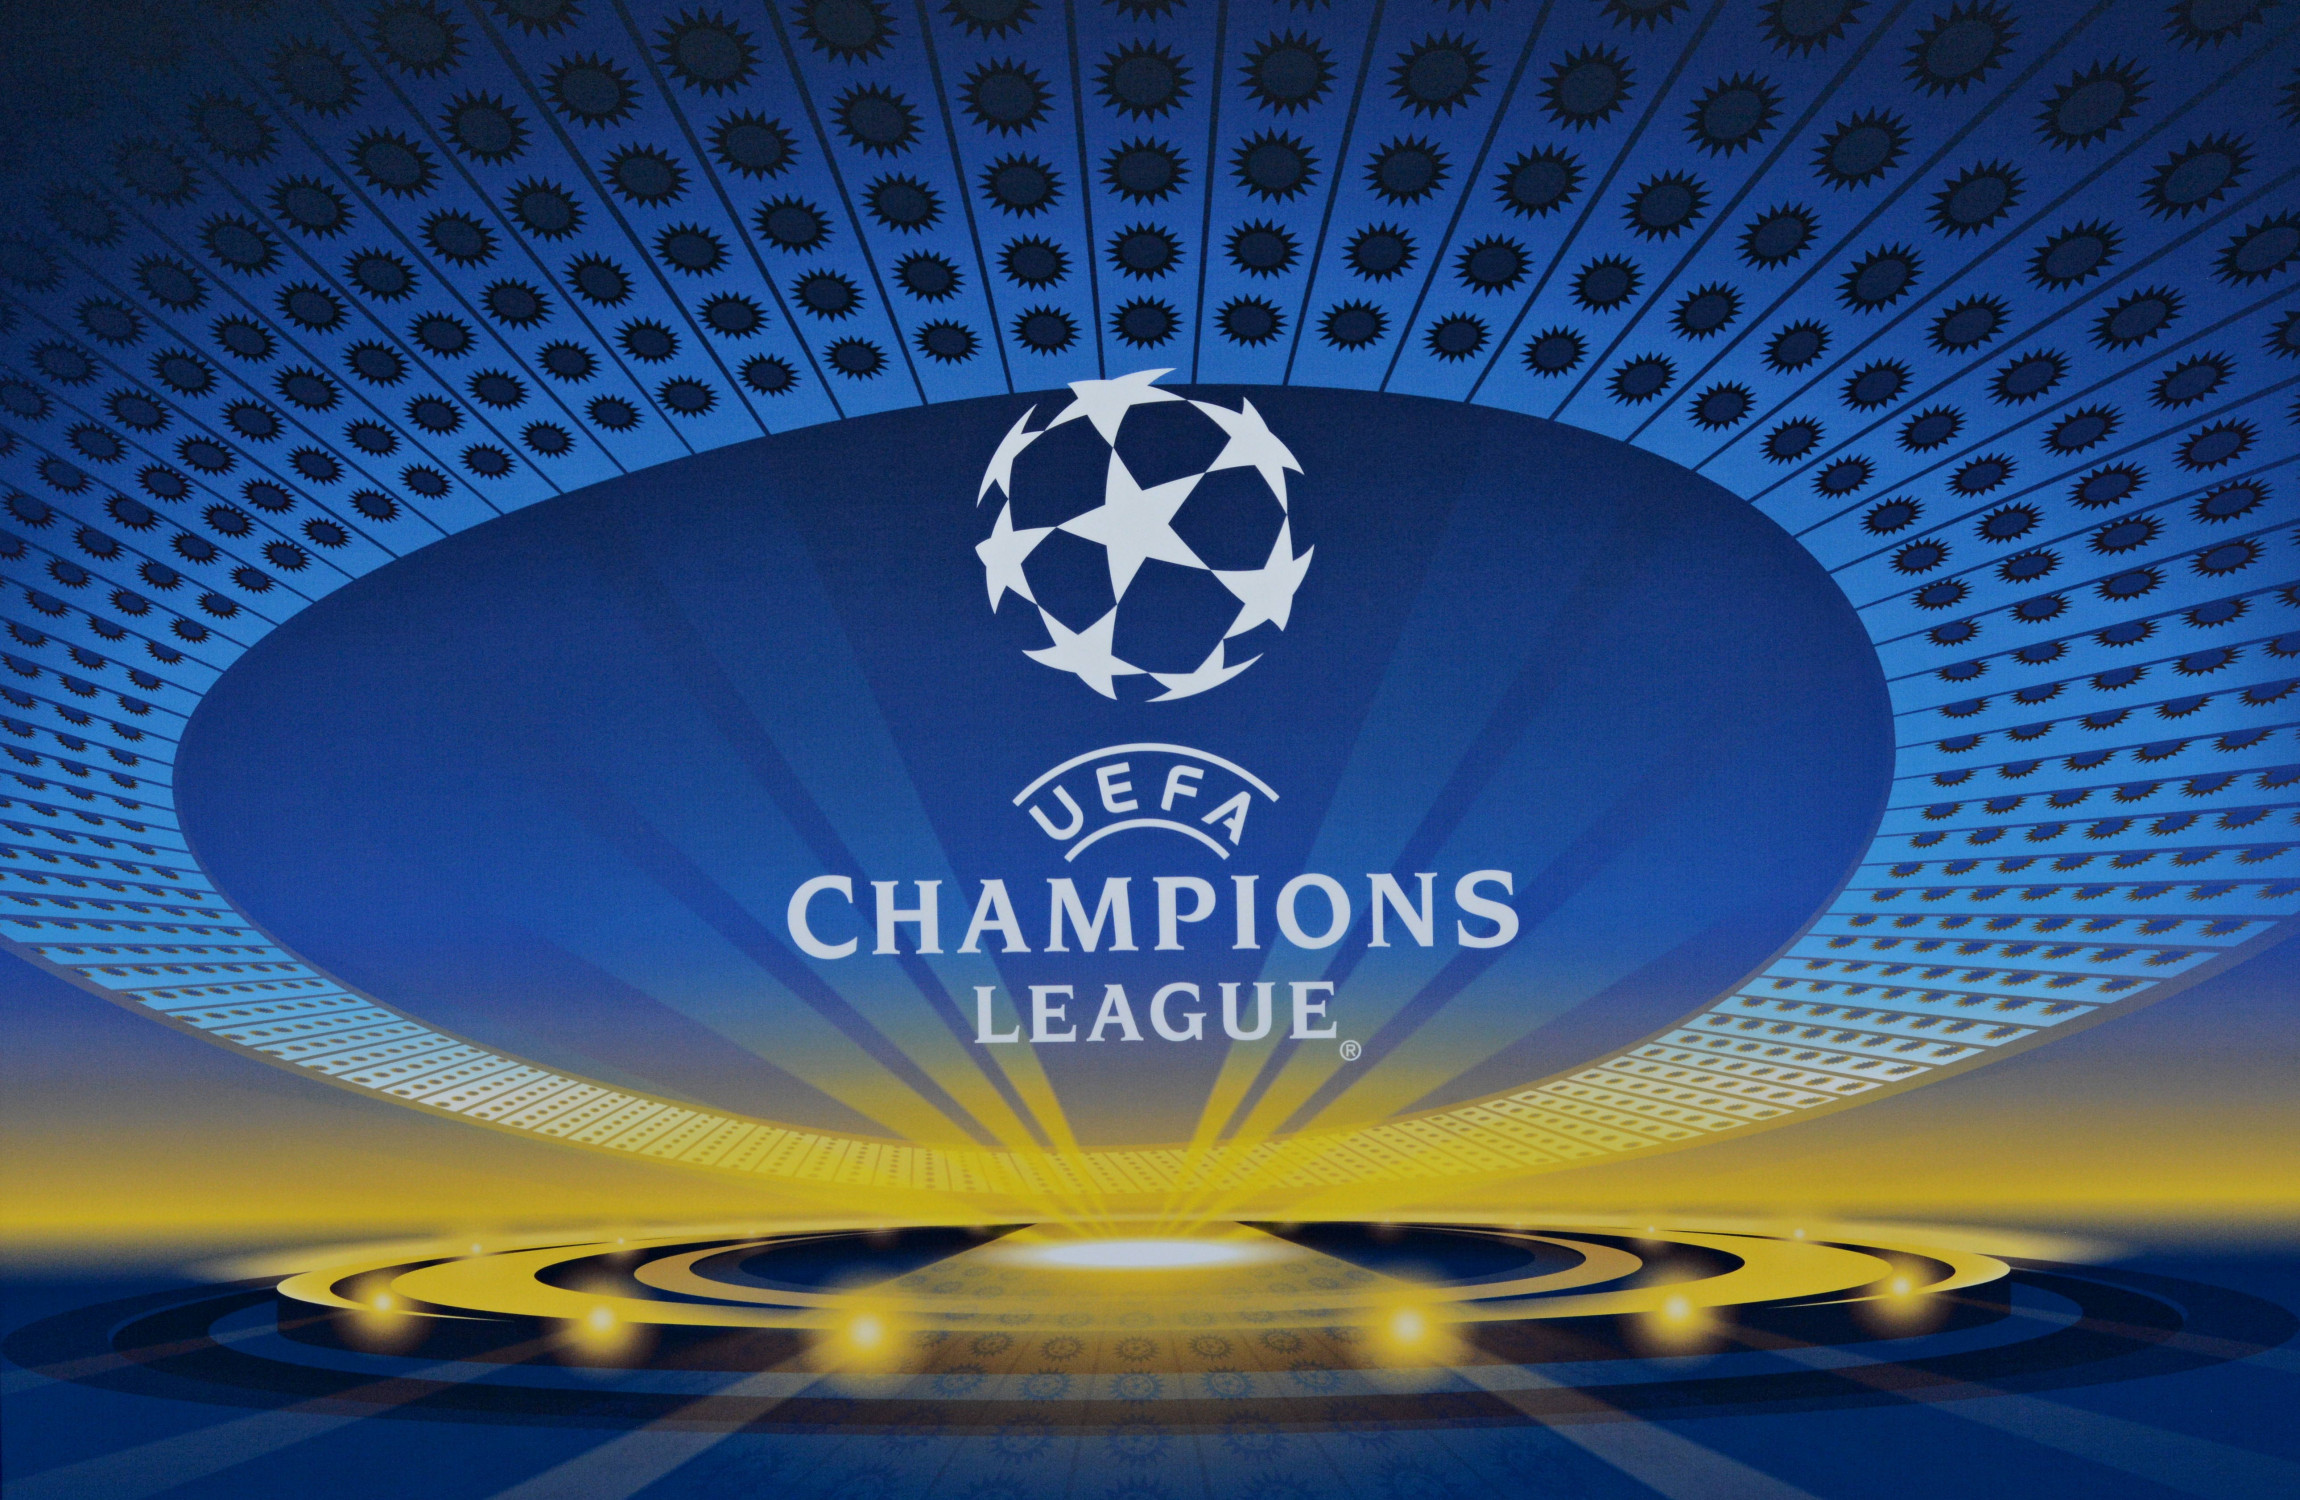 Ireland: Virgin Media, TV3 score Champions League rights